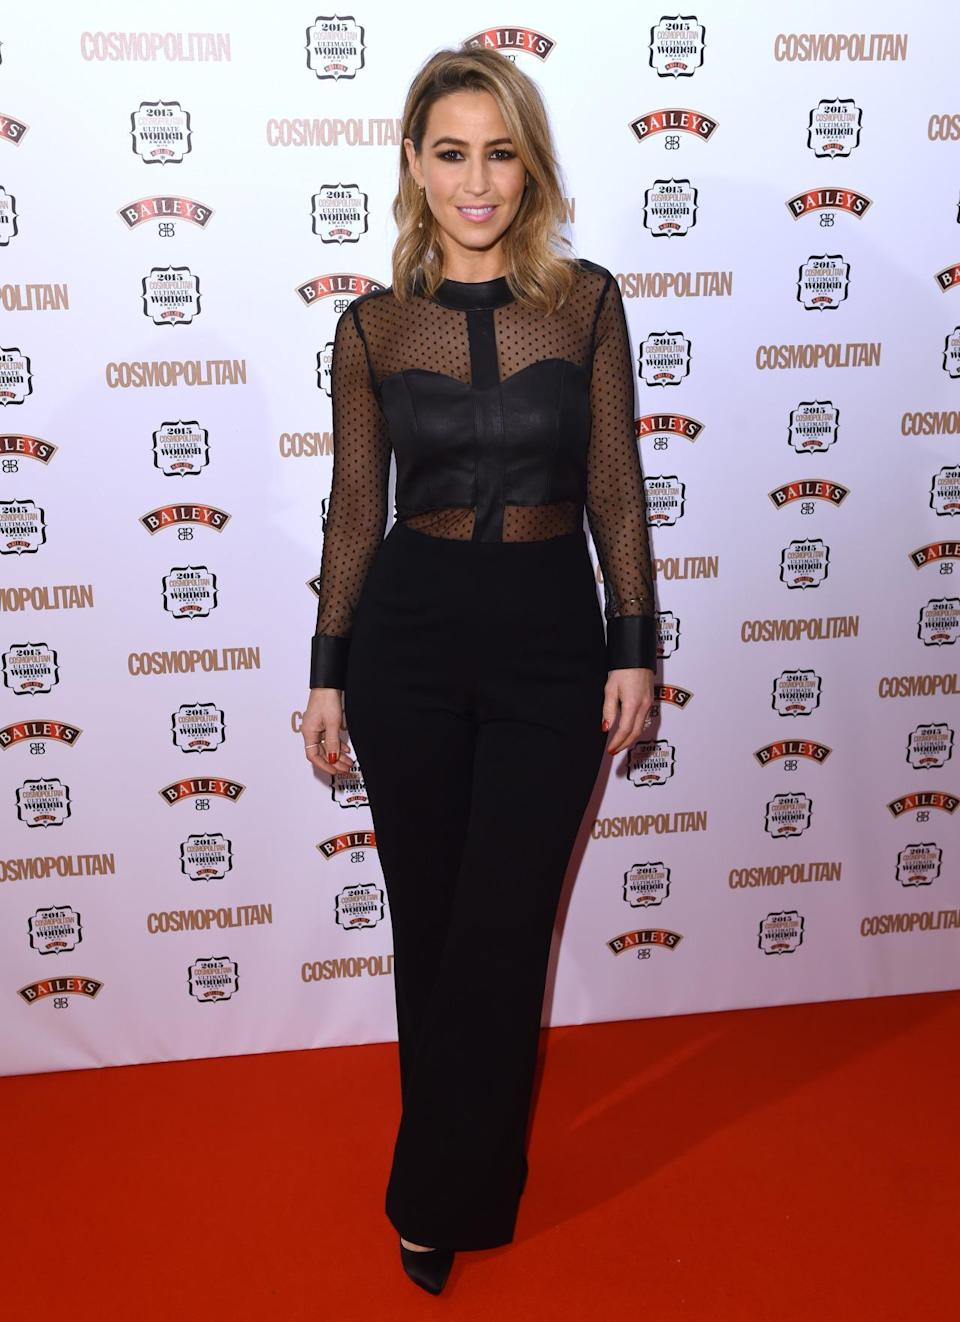 Rachel Stevens showed off her taut tum in a semi-sheer polka dot top, paired with black trousers. [Photo: Rex]